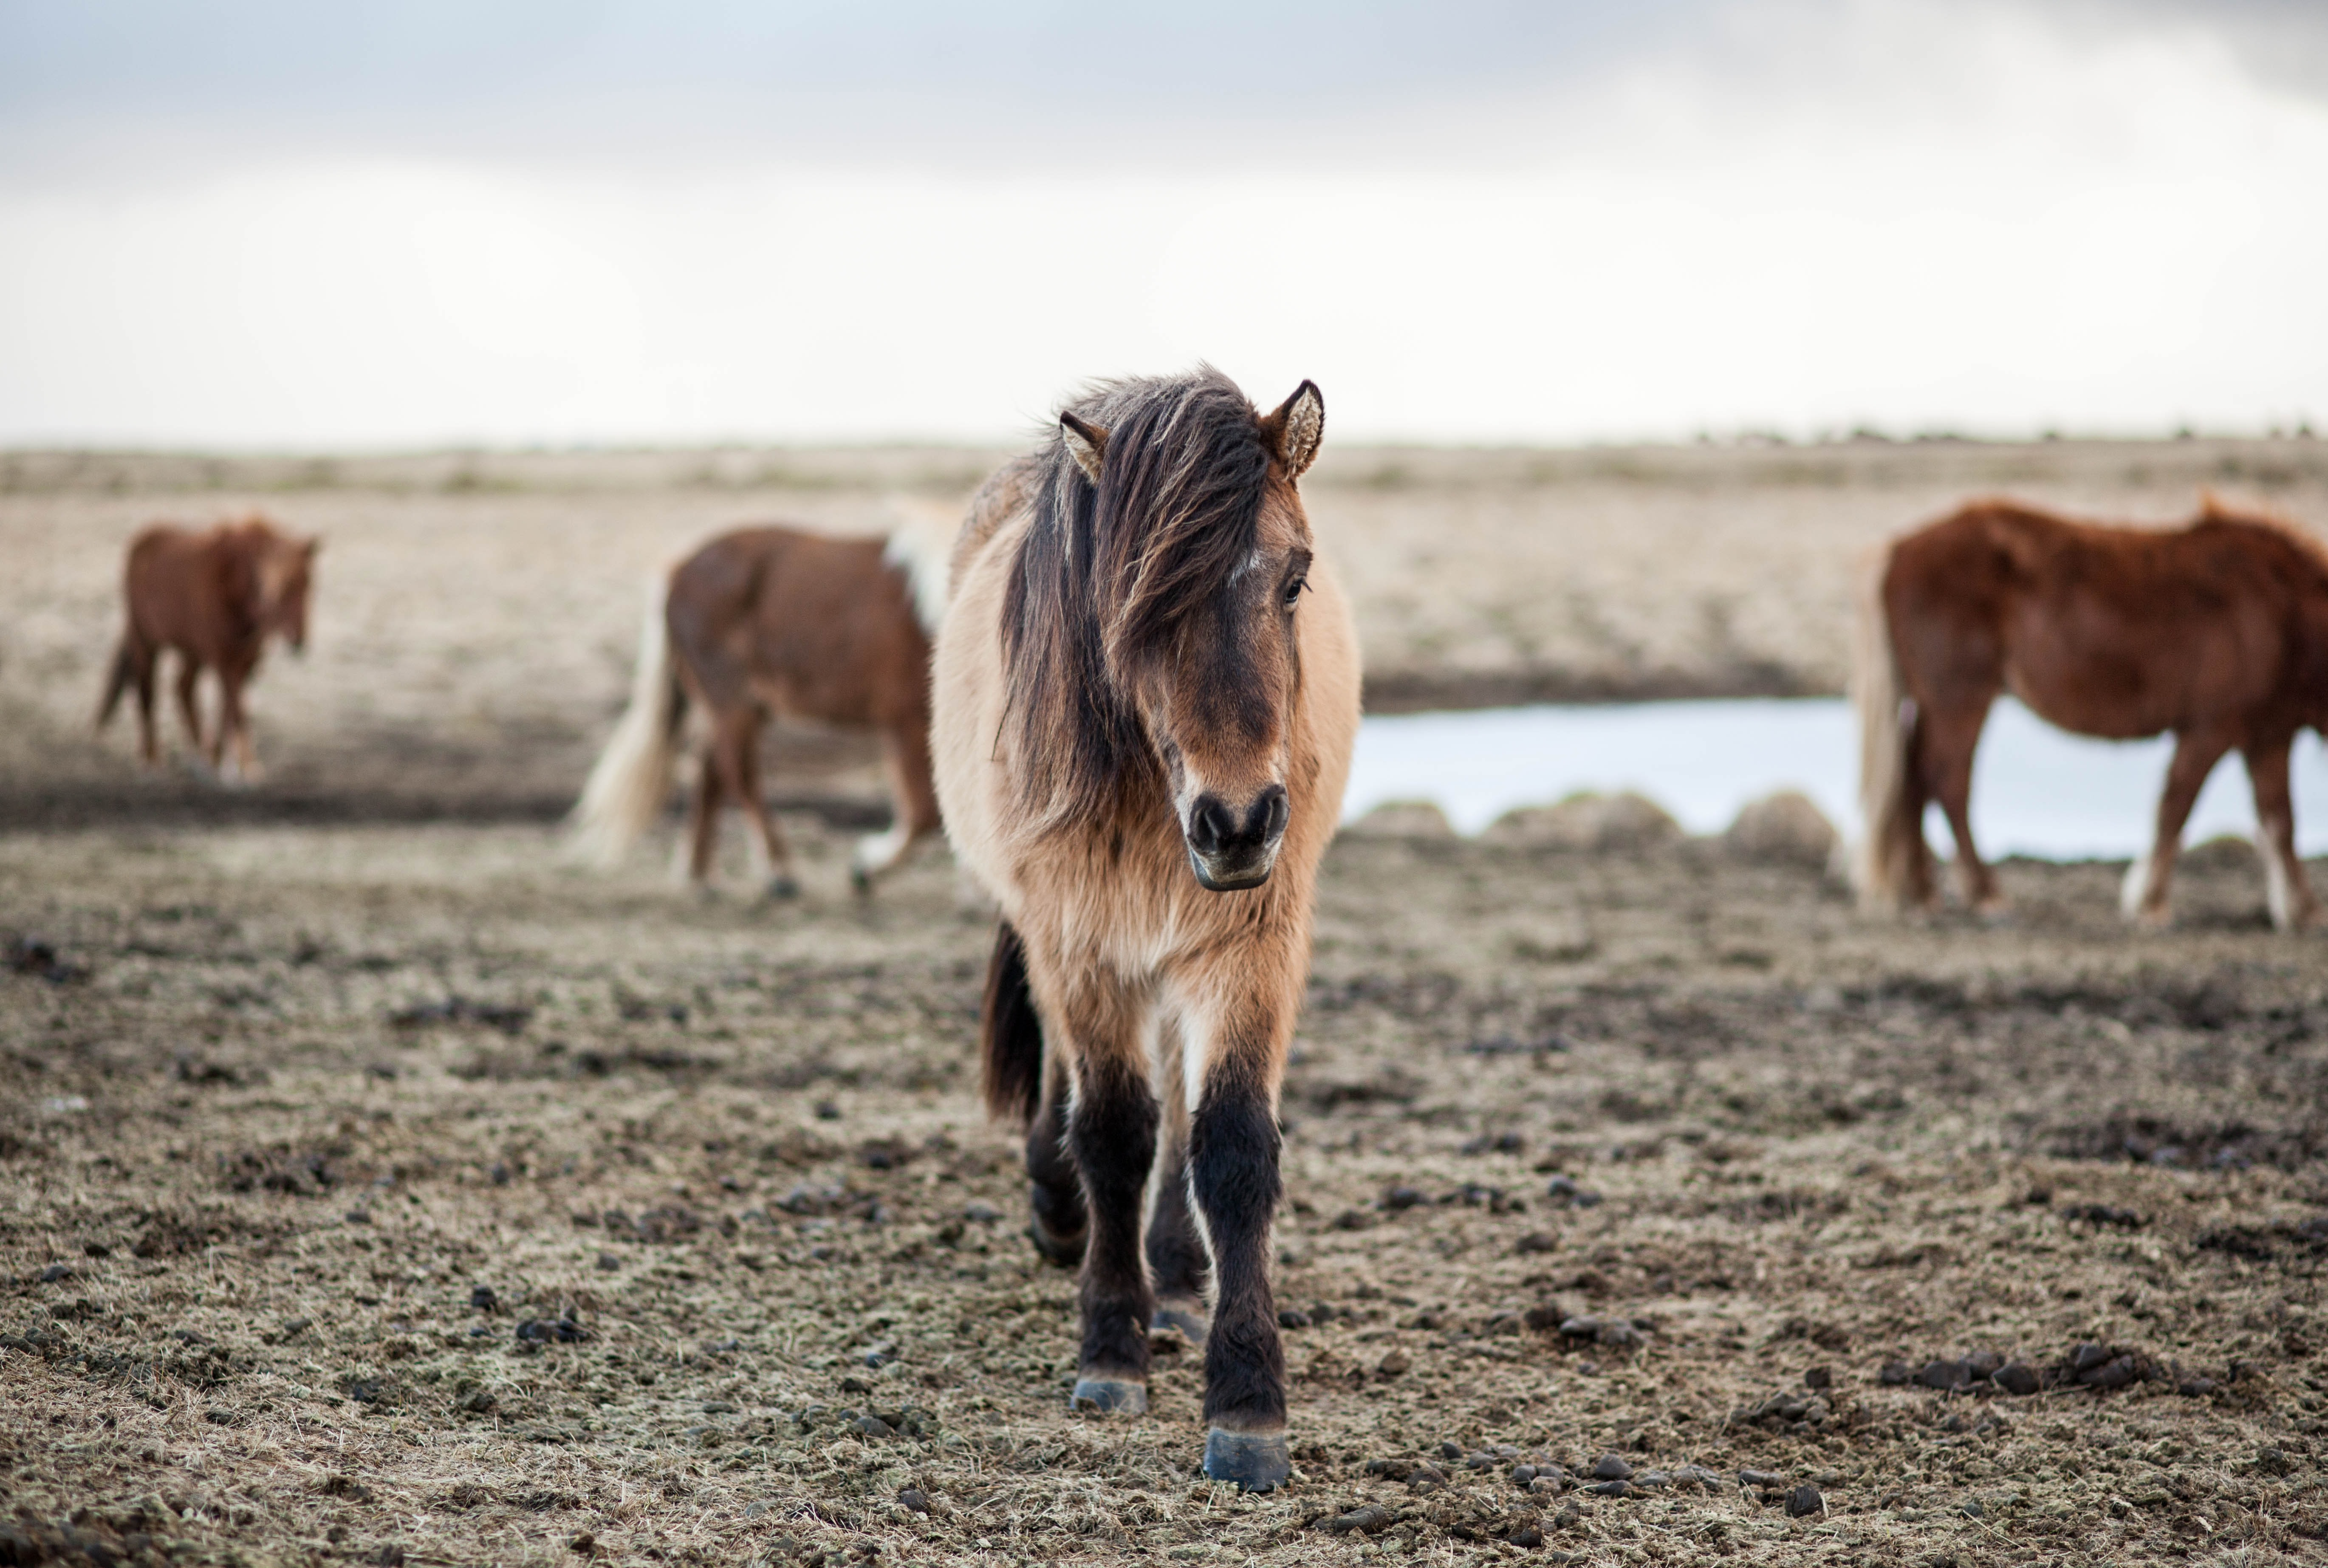 A shaggy pony with its mane covering its right eye on a cold pasture with other horses at the back